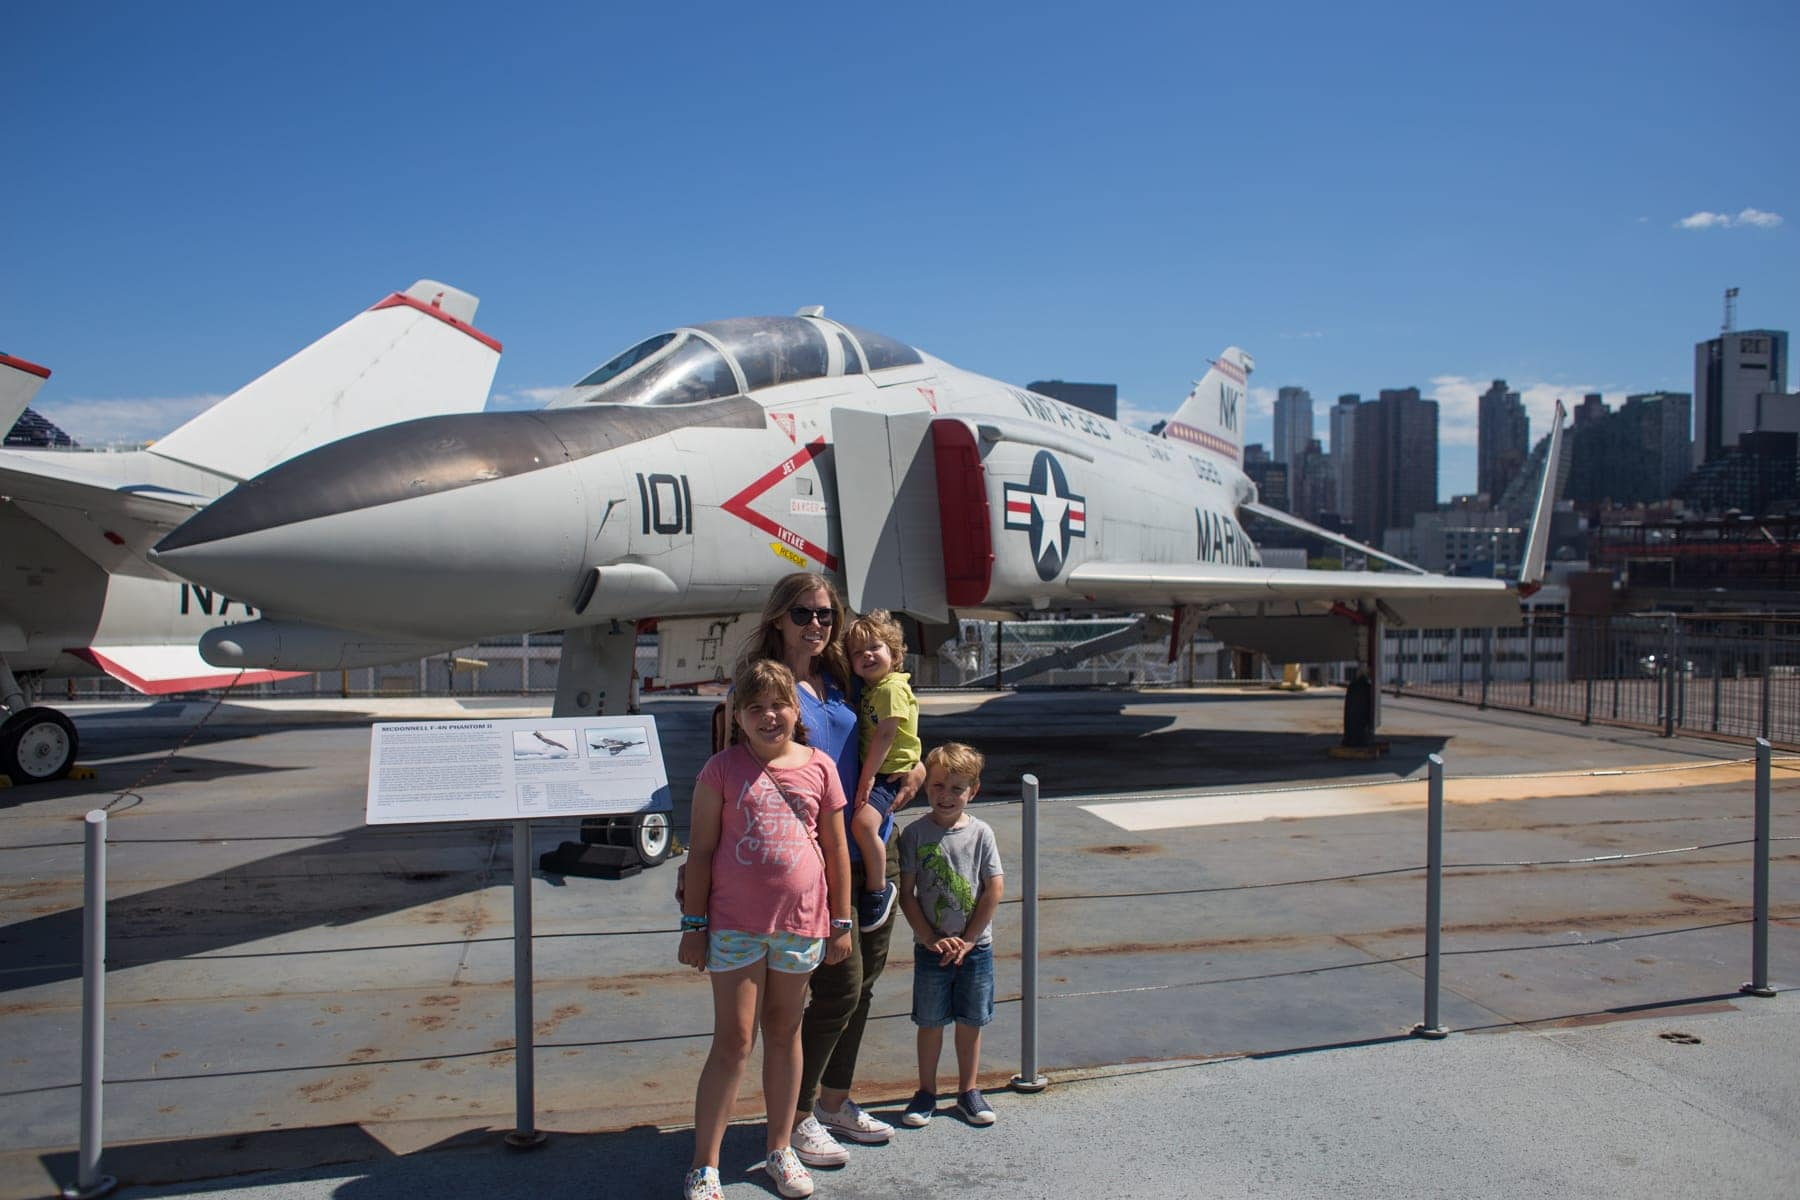 The kids in front of a plane